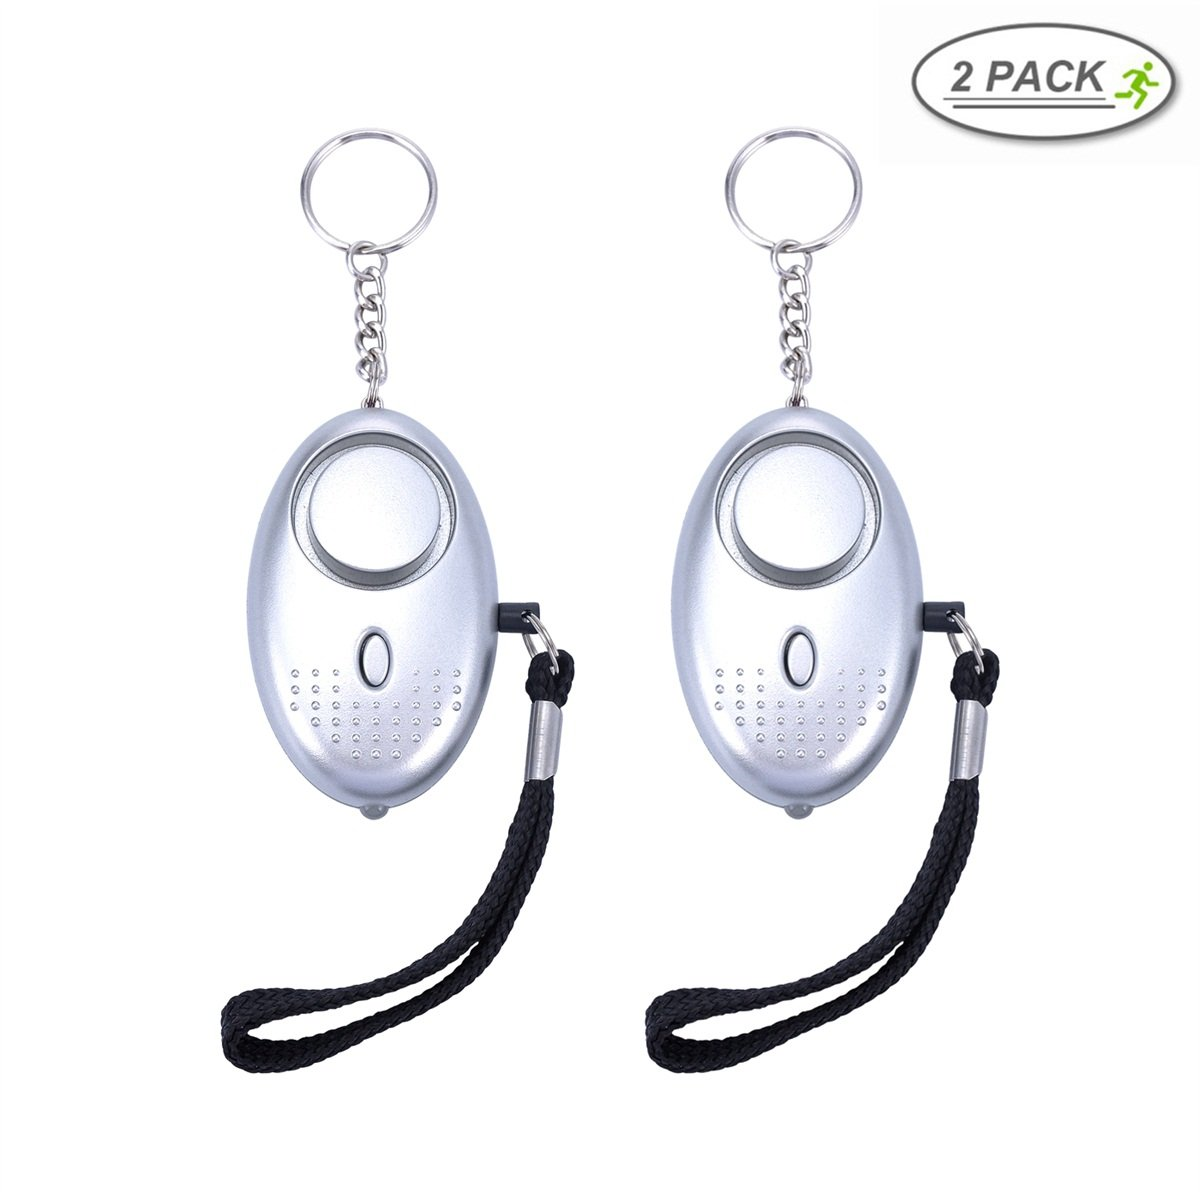 Personal Safety Alarm Keychain Anti-Theft Keychain Alarm 130 DB Personal Safety Self Defense Electronic Device Bag Decoration 2 Pieces Kids Girls Superior 2 Packs Shouyi